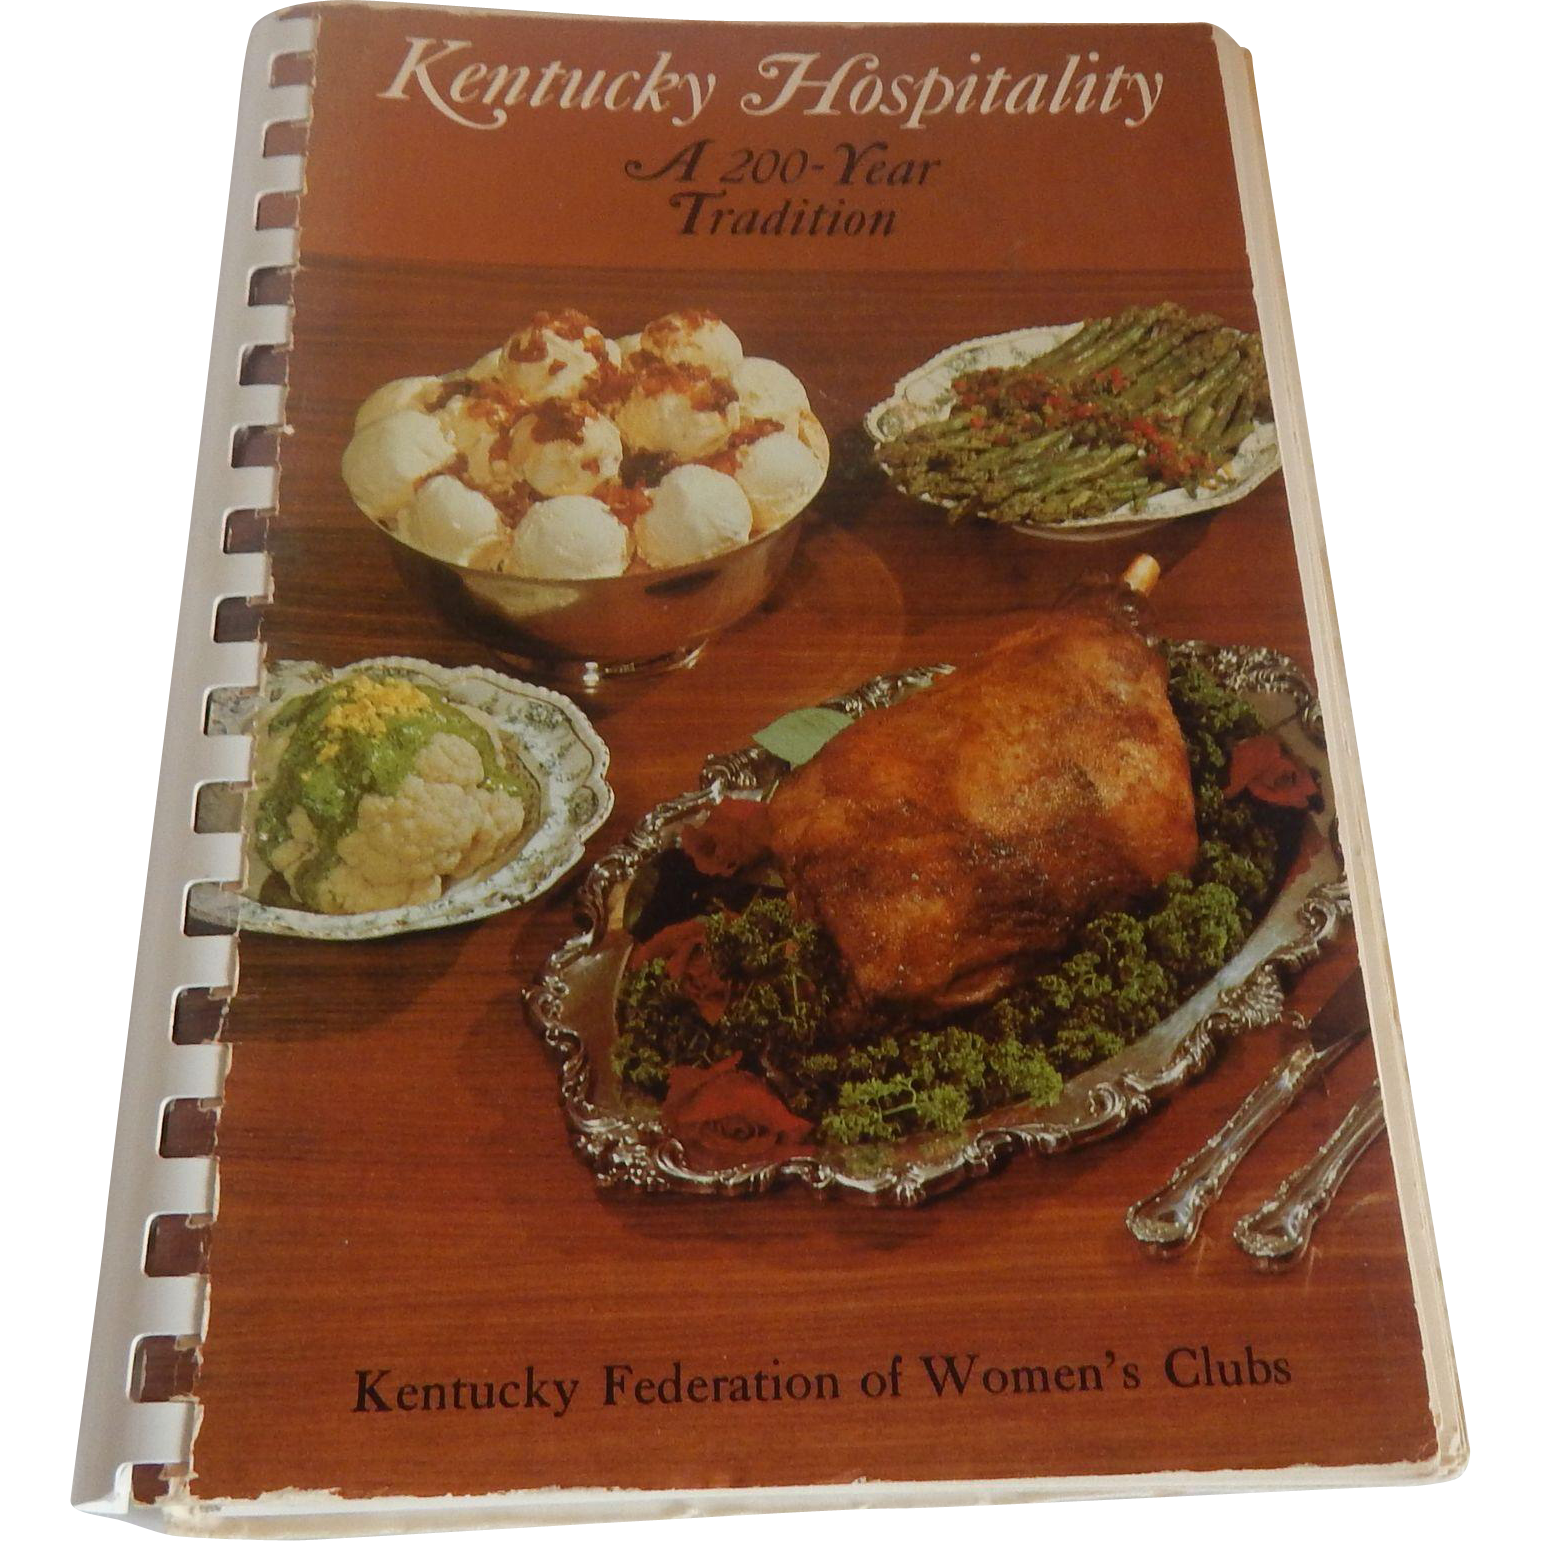 Kentucky Hospitality A 200-Year Tradition